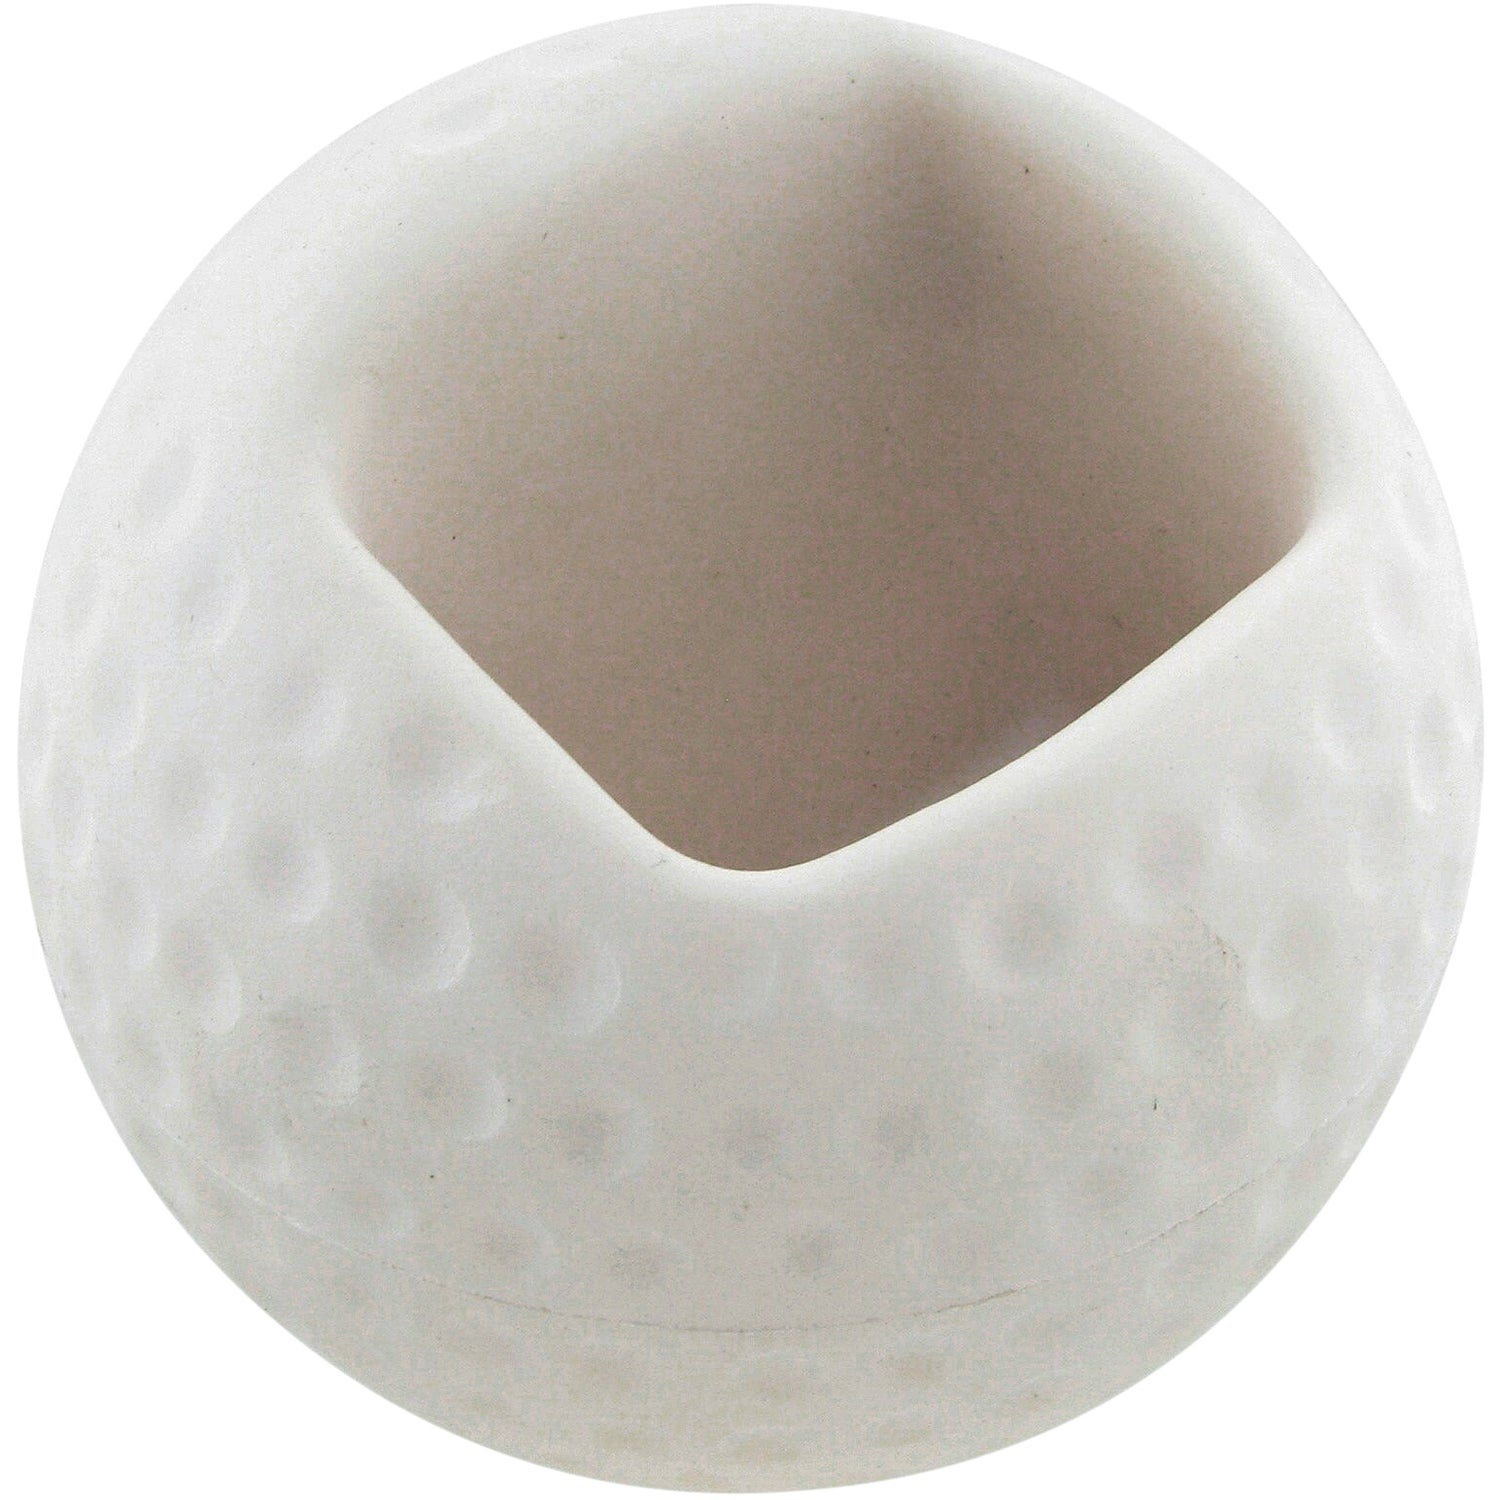 promotional golf ball cell phone holder stress toys with custom